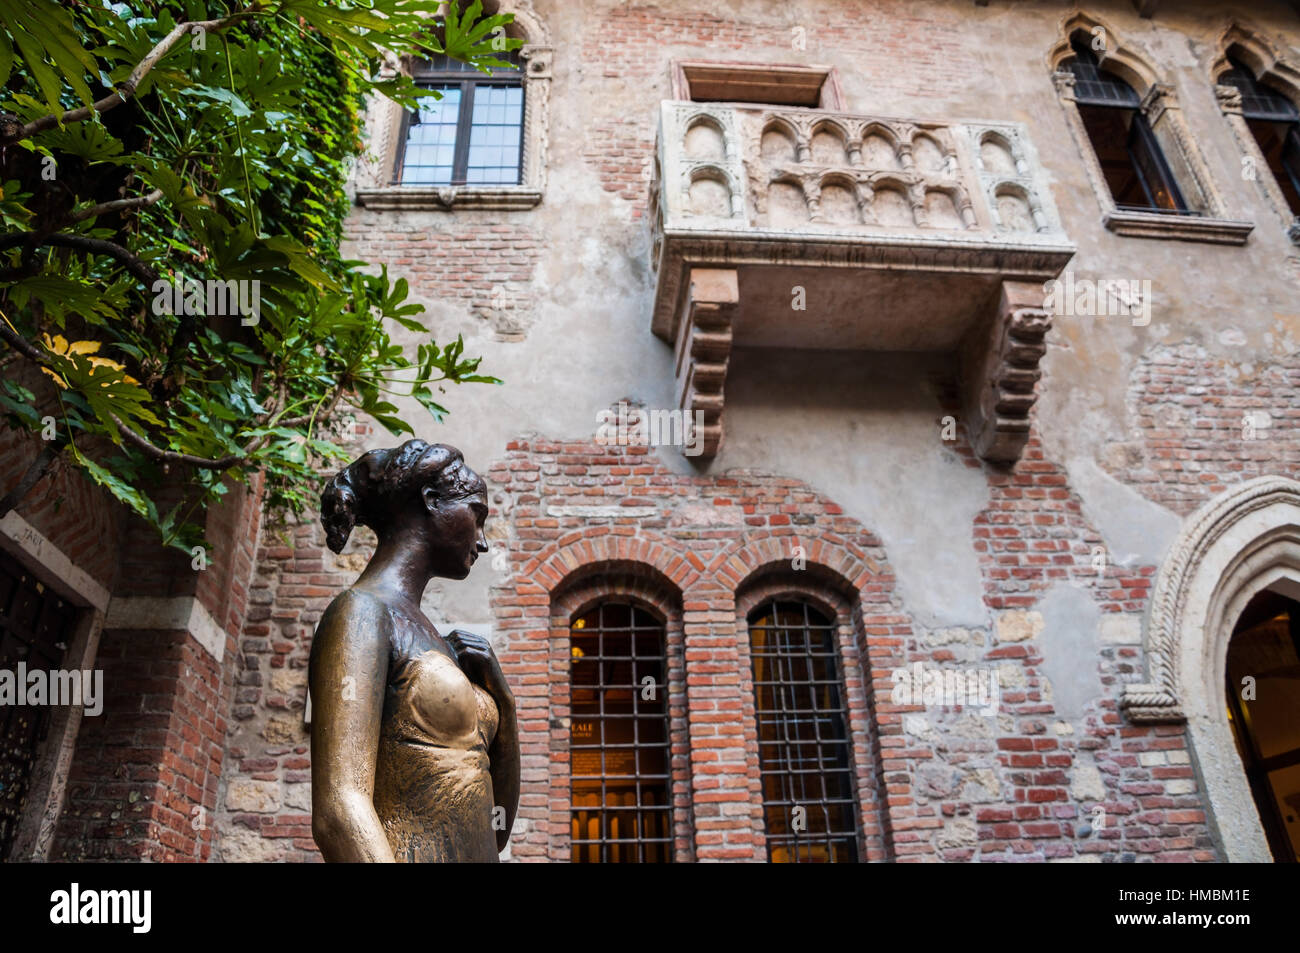 Statue of Juliet, with balcony in the background. Verona Stock Photo